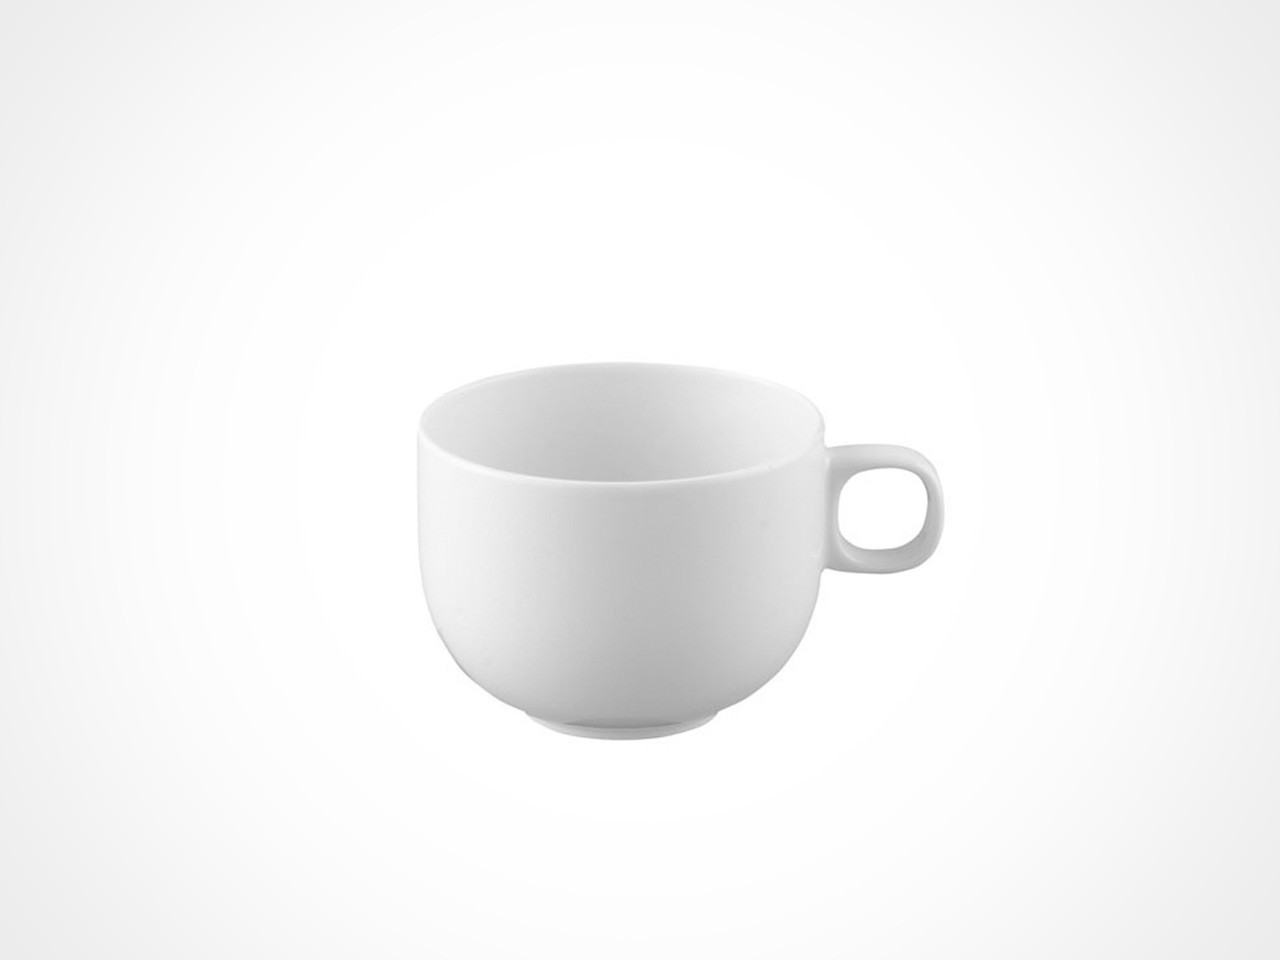 Rosenthal Moon White coffee cup on white background.